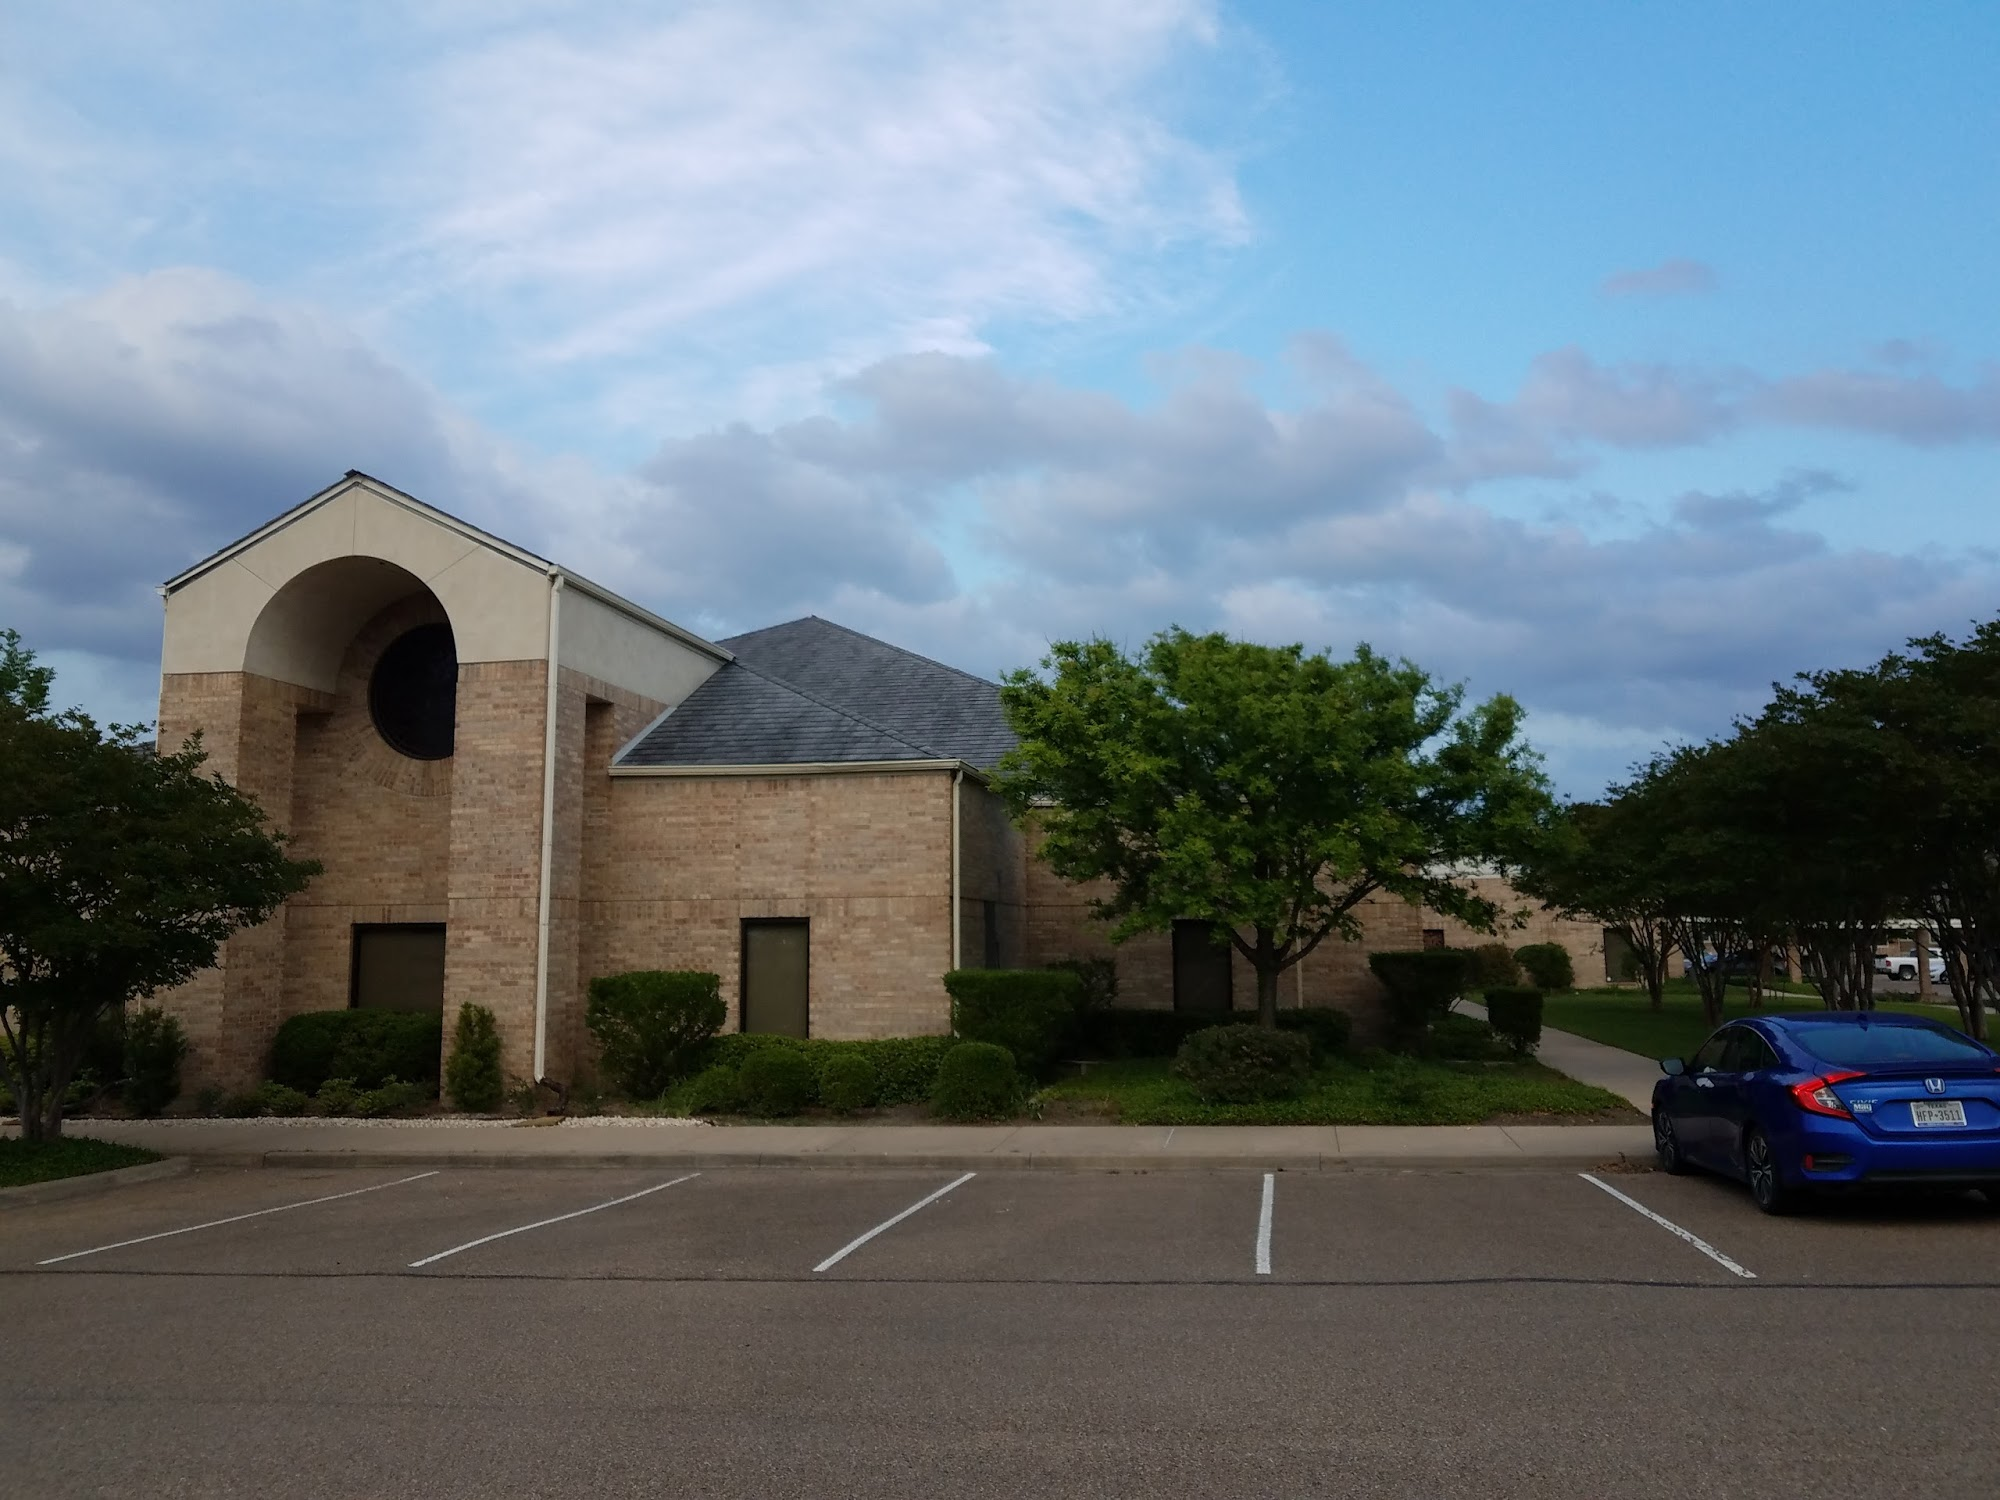 Central United Methodist Church 5740 Bagby Ave, Waco